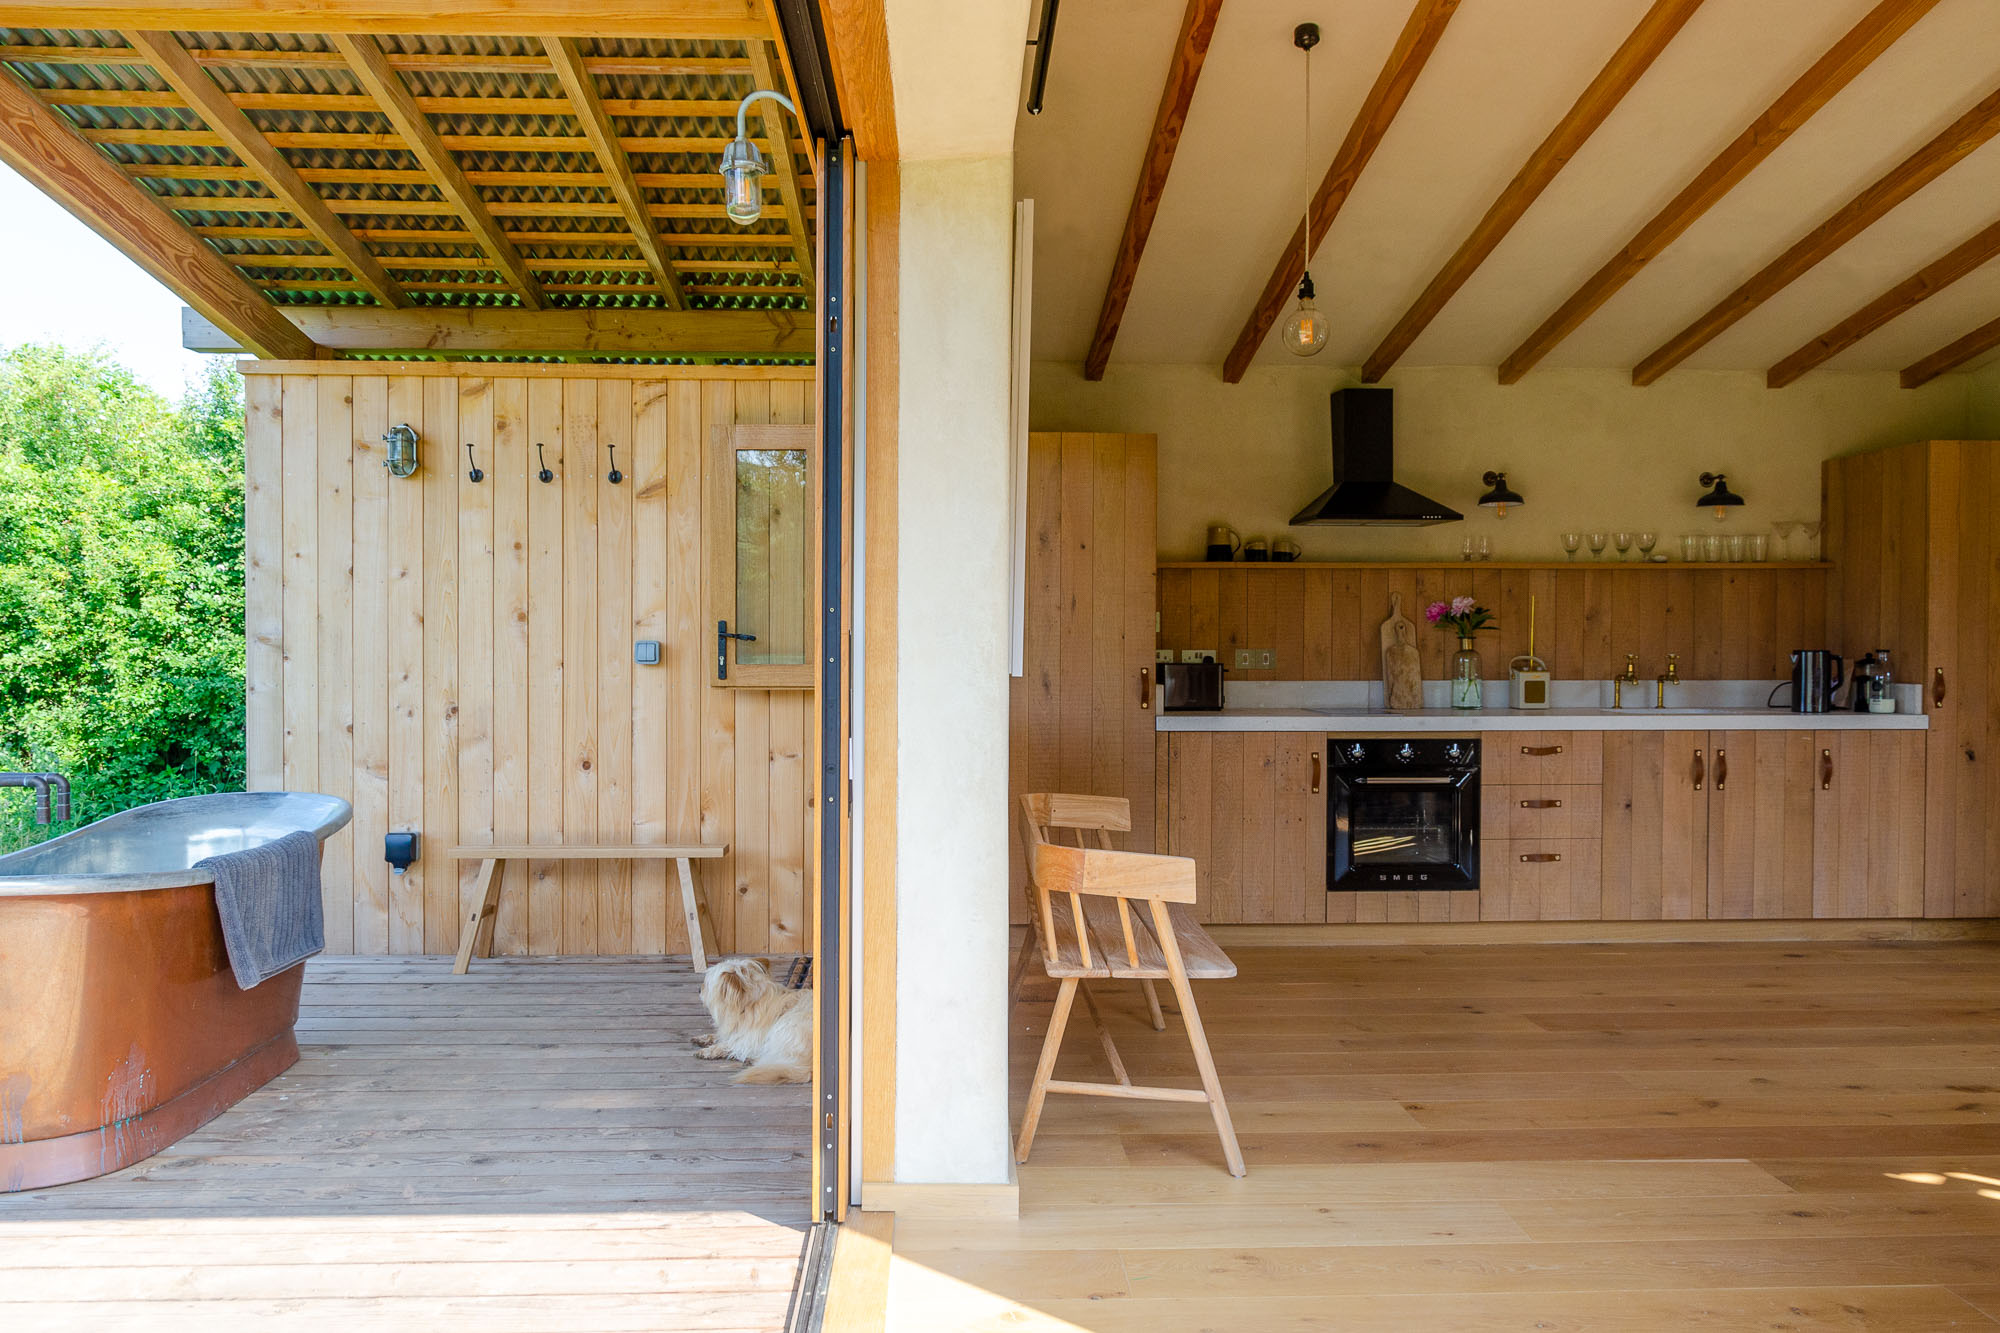 off-grid bespoke cedar cabin with covered veranda, outdoor copper bath, oak and concrete kitchen